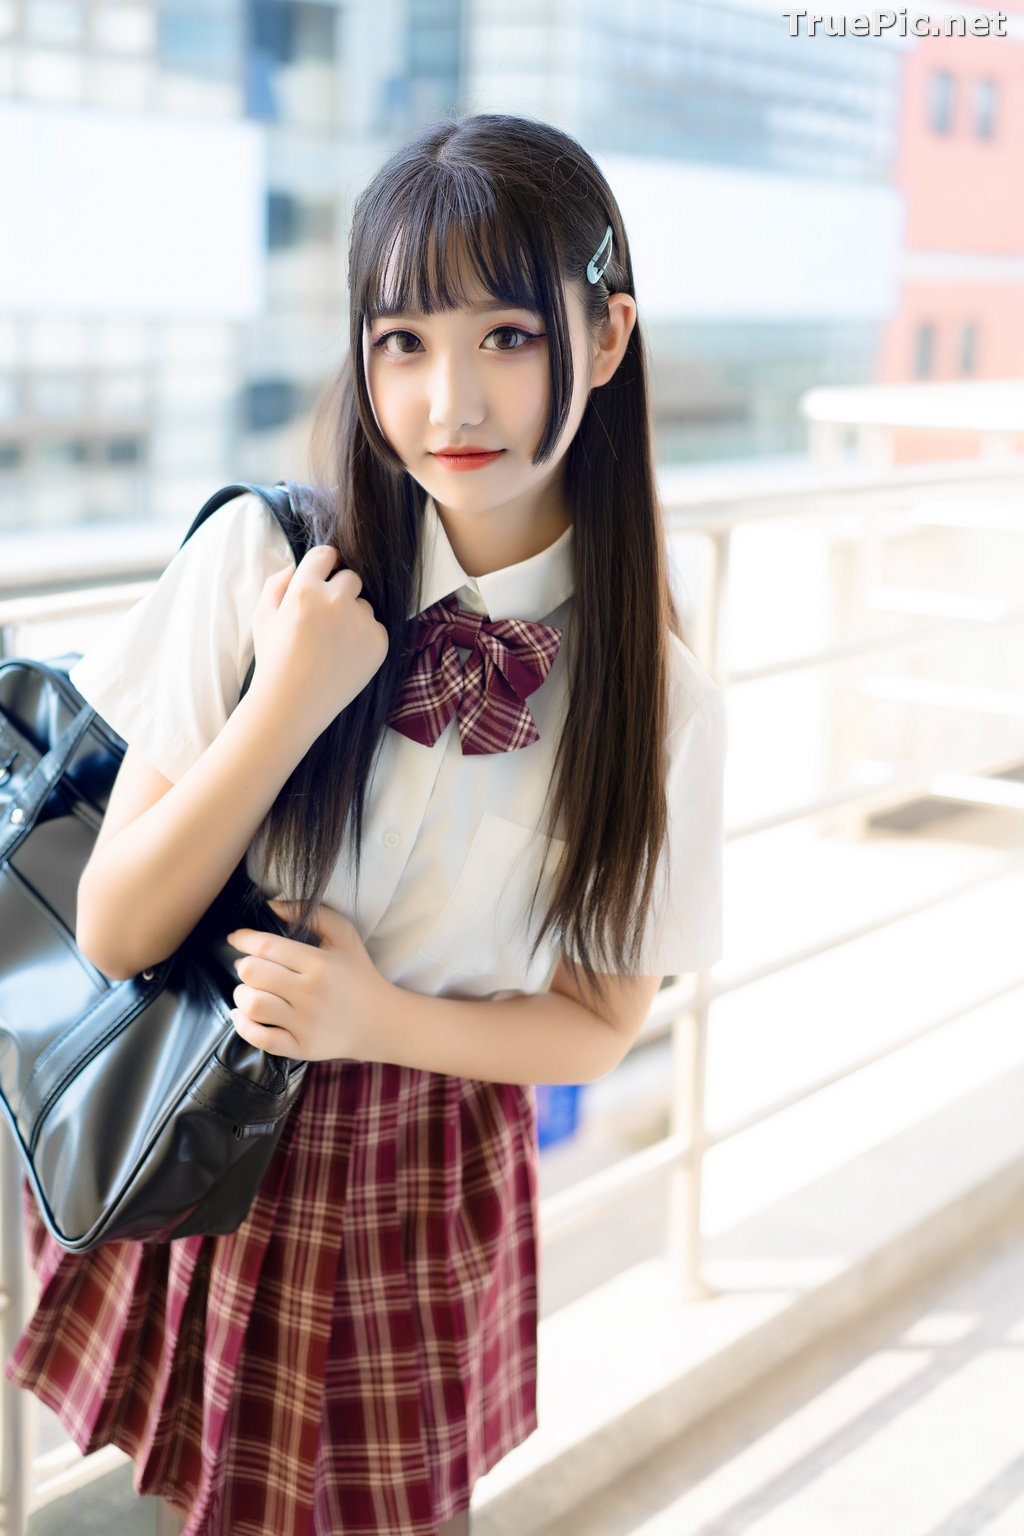 Image [MTCos] 喵糖映画 Vol.023 – Chinese Cute Model – Long Hair JK Girl - TruePic.net - Picture-6